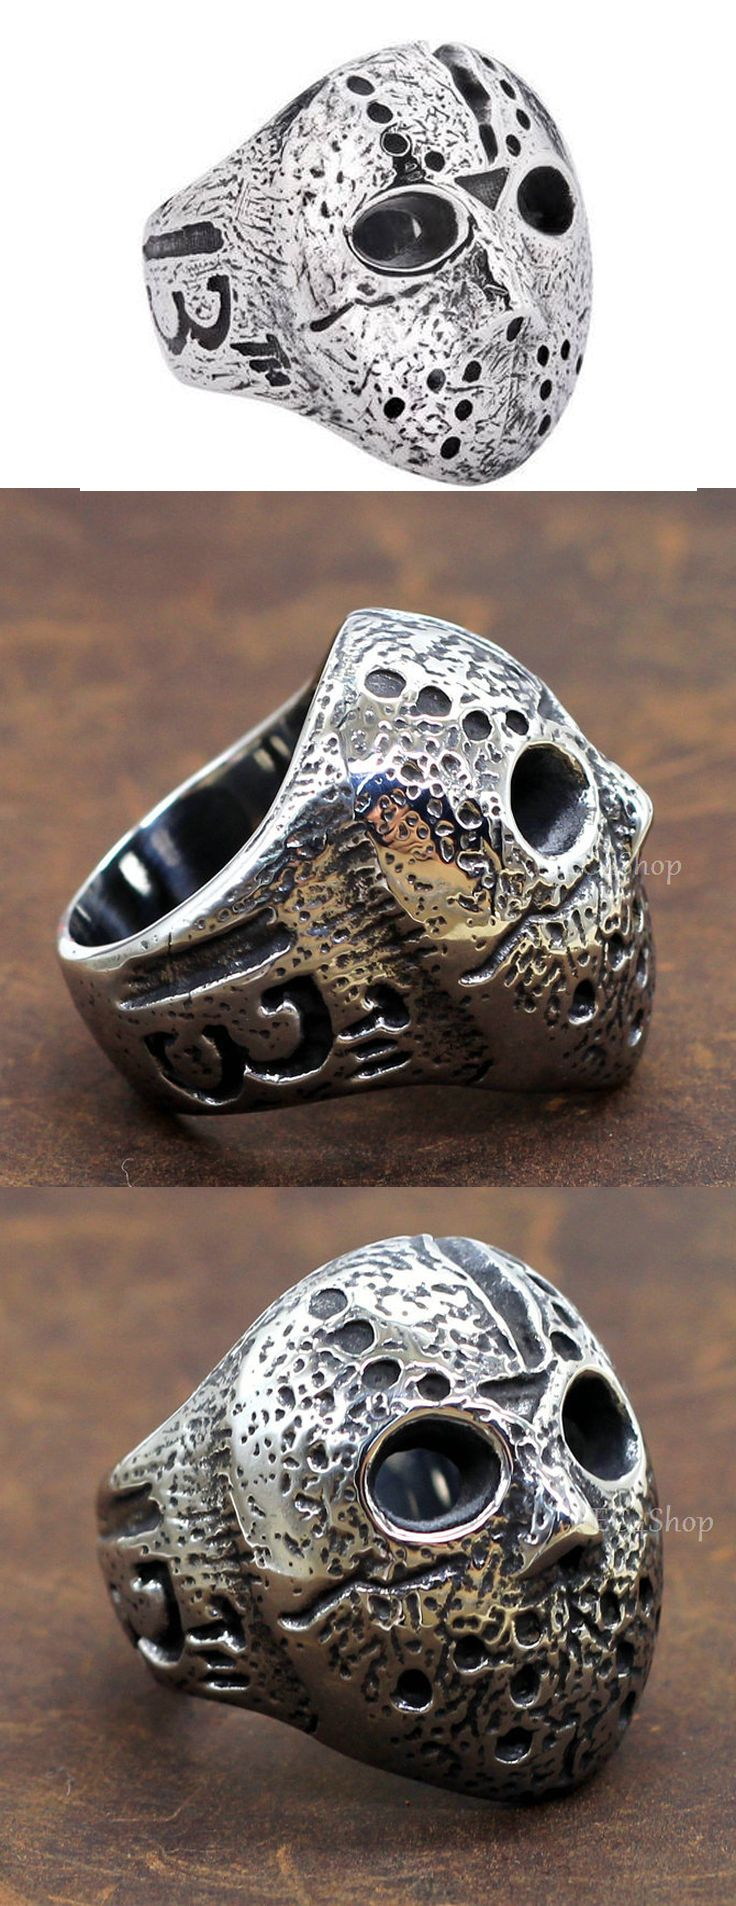 Celebrate Friday the 13th with Jason jewelry at RebelsMarket today!